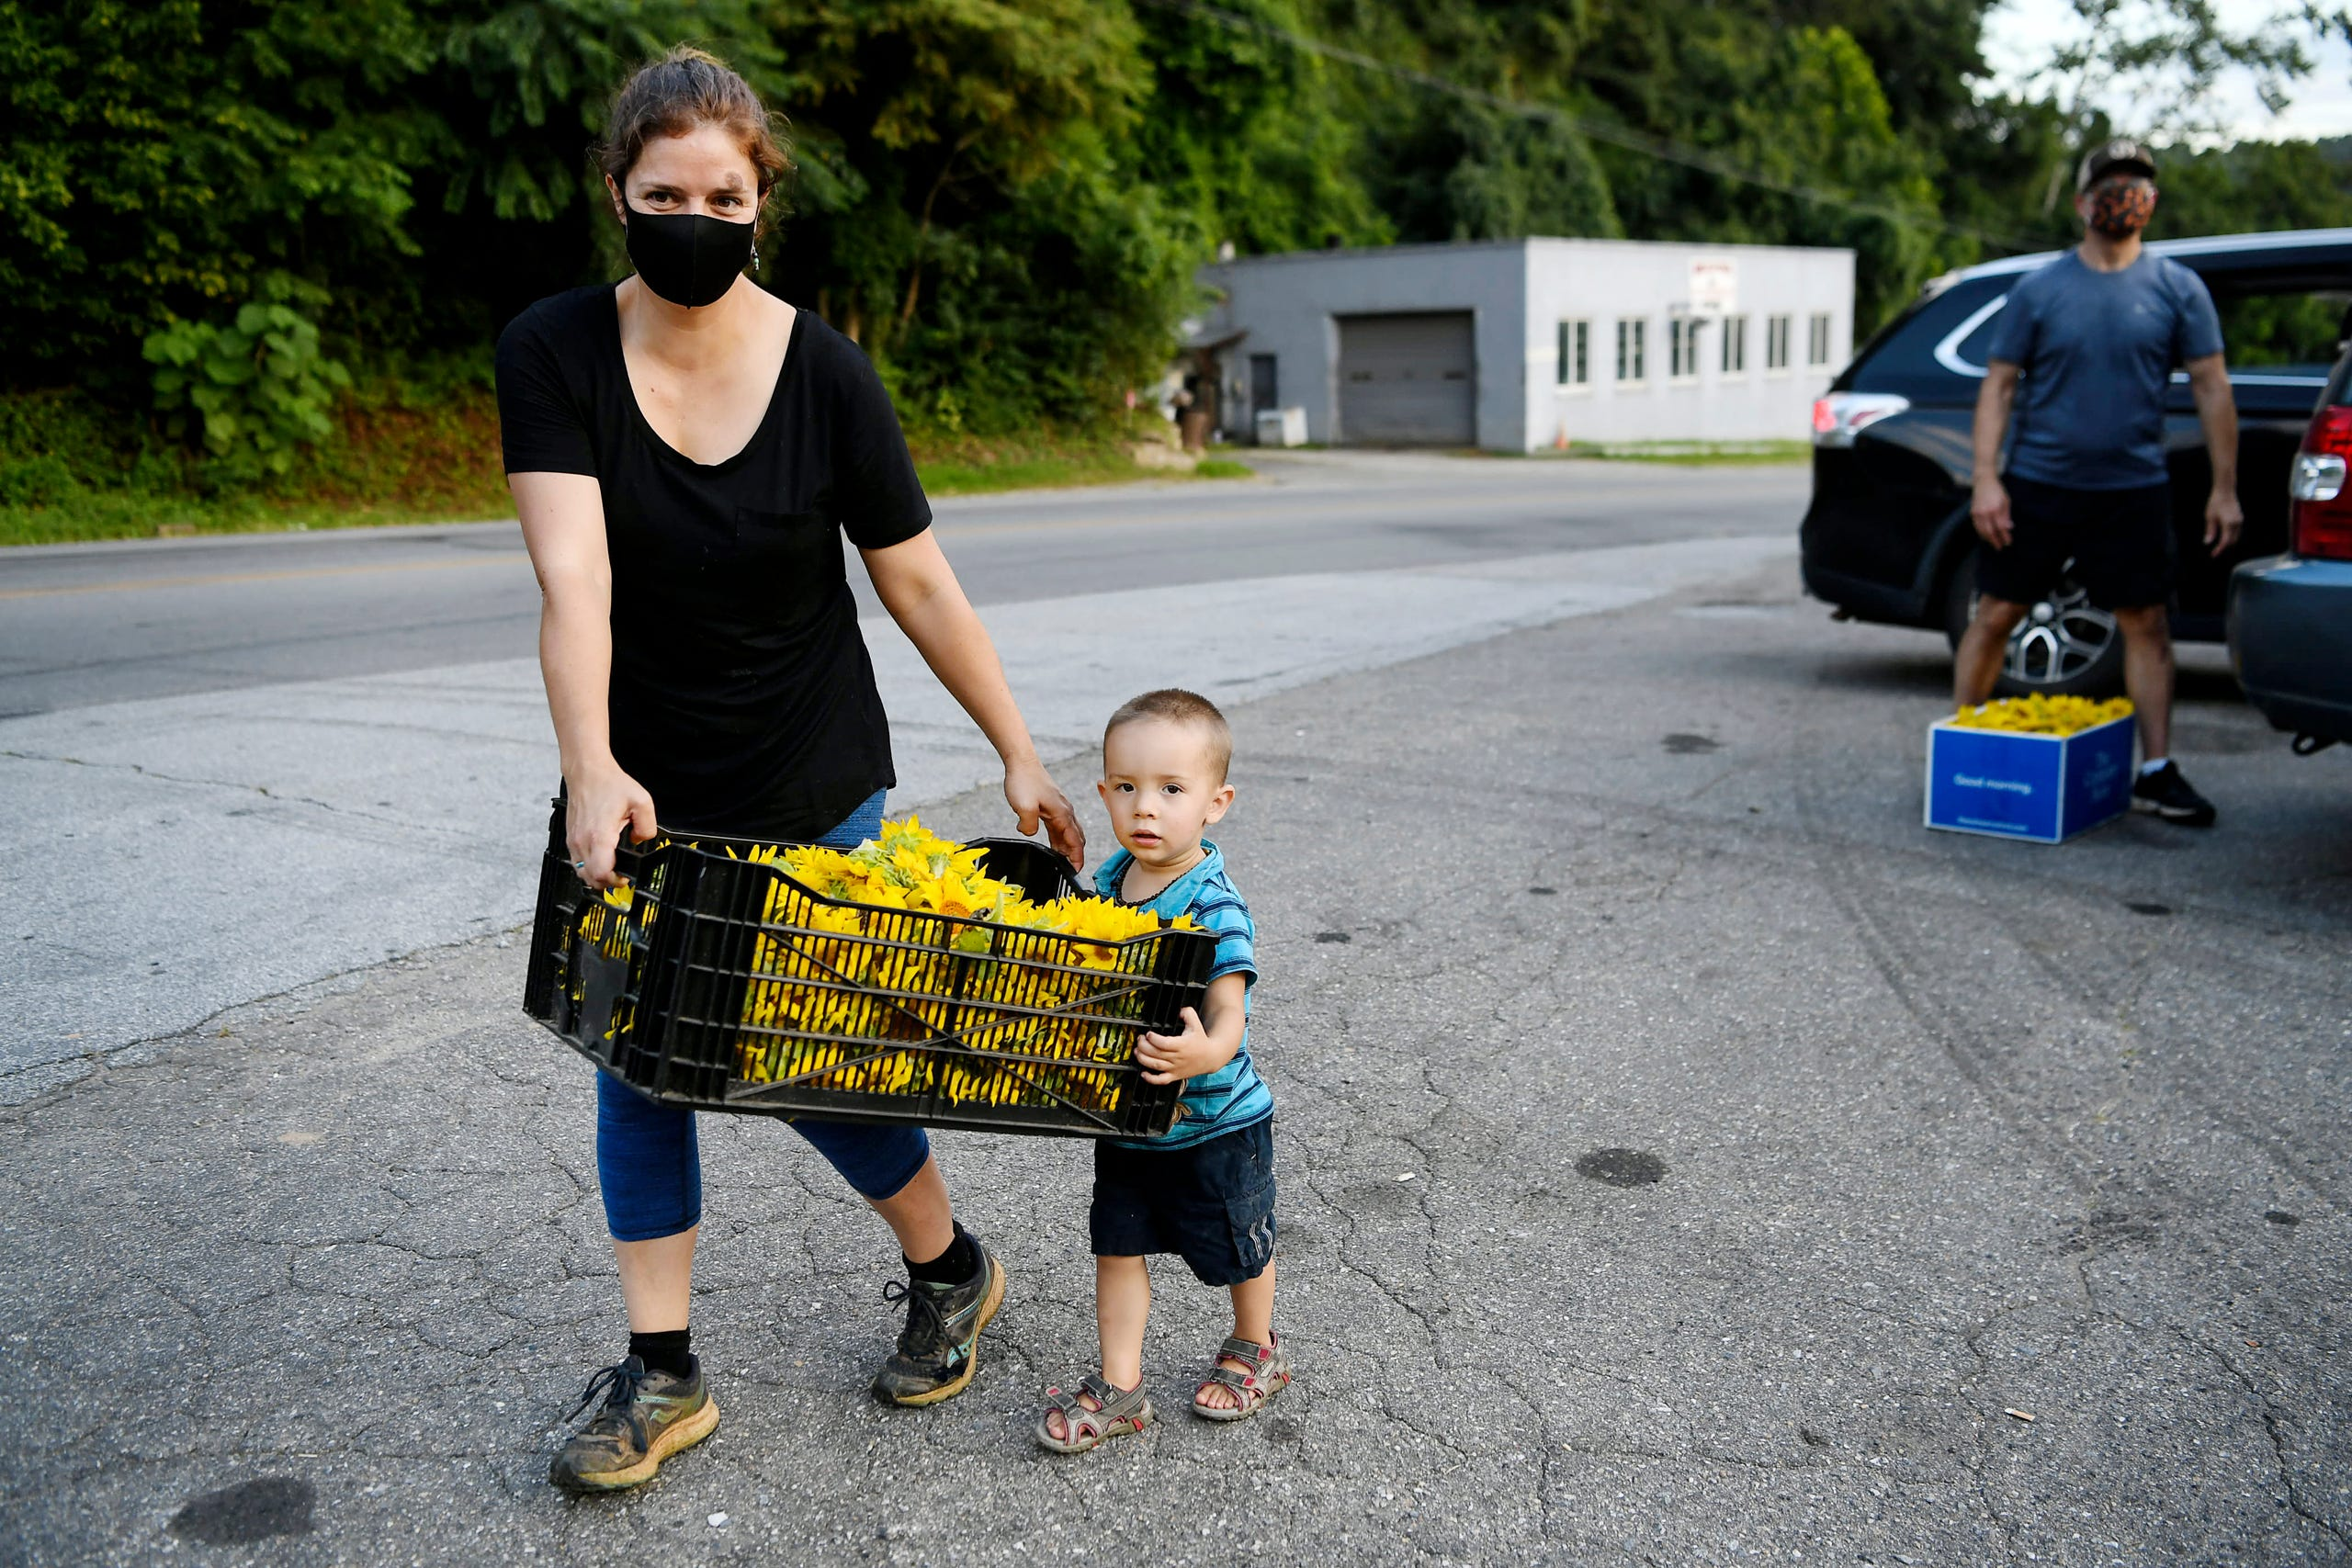 """Arica Haro carries a load of sunflowers with help from her two-year-old son, Forest, as residents of the Olivette community spread cheer across the Craggy Bridge in Woodfin August 19, 2020. """"It's been quite the year,"""" said Banzer, """"so this is exciting, to spread a little happiness and to have the opportunity to get a smile."""""""